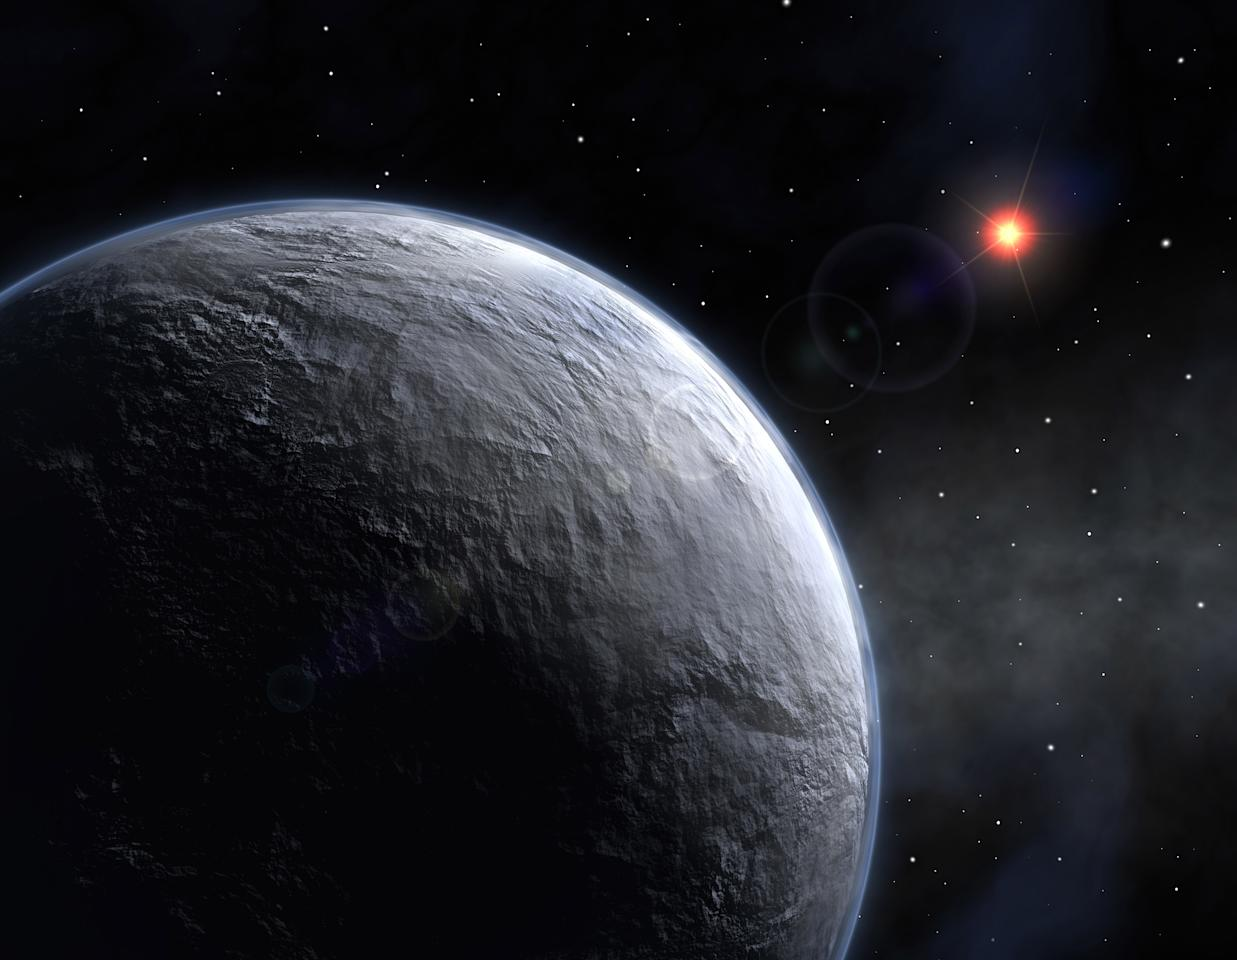 A newly discovered planet, designated by the unglamorous identifier of OGLE-2005-BLG-390Lb, orbits a red star five times less massive than the Sun and located at a distance of about 20,000 light years, in this undated artist's impression. A new planet-hunting technique has detected the most Earth-like planet yet around a star other than our sun, raising hopes of finding a space rock that might support life, astronomers reported on January 25, 2006. REUTERS/ESO/Handout